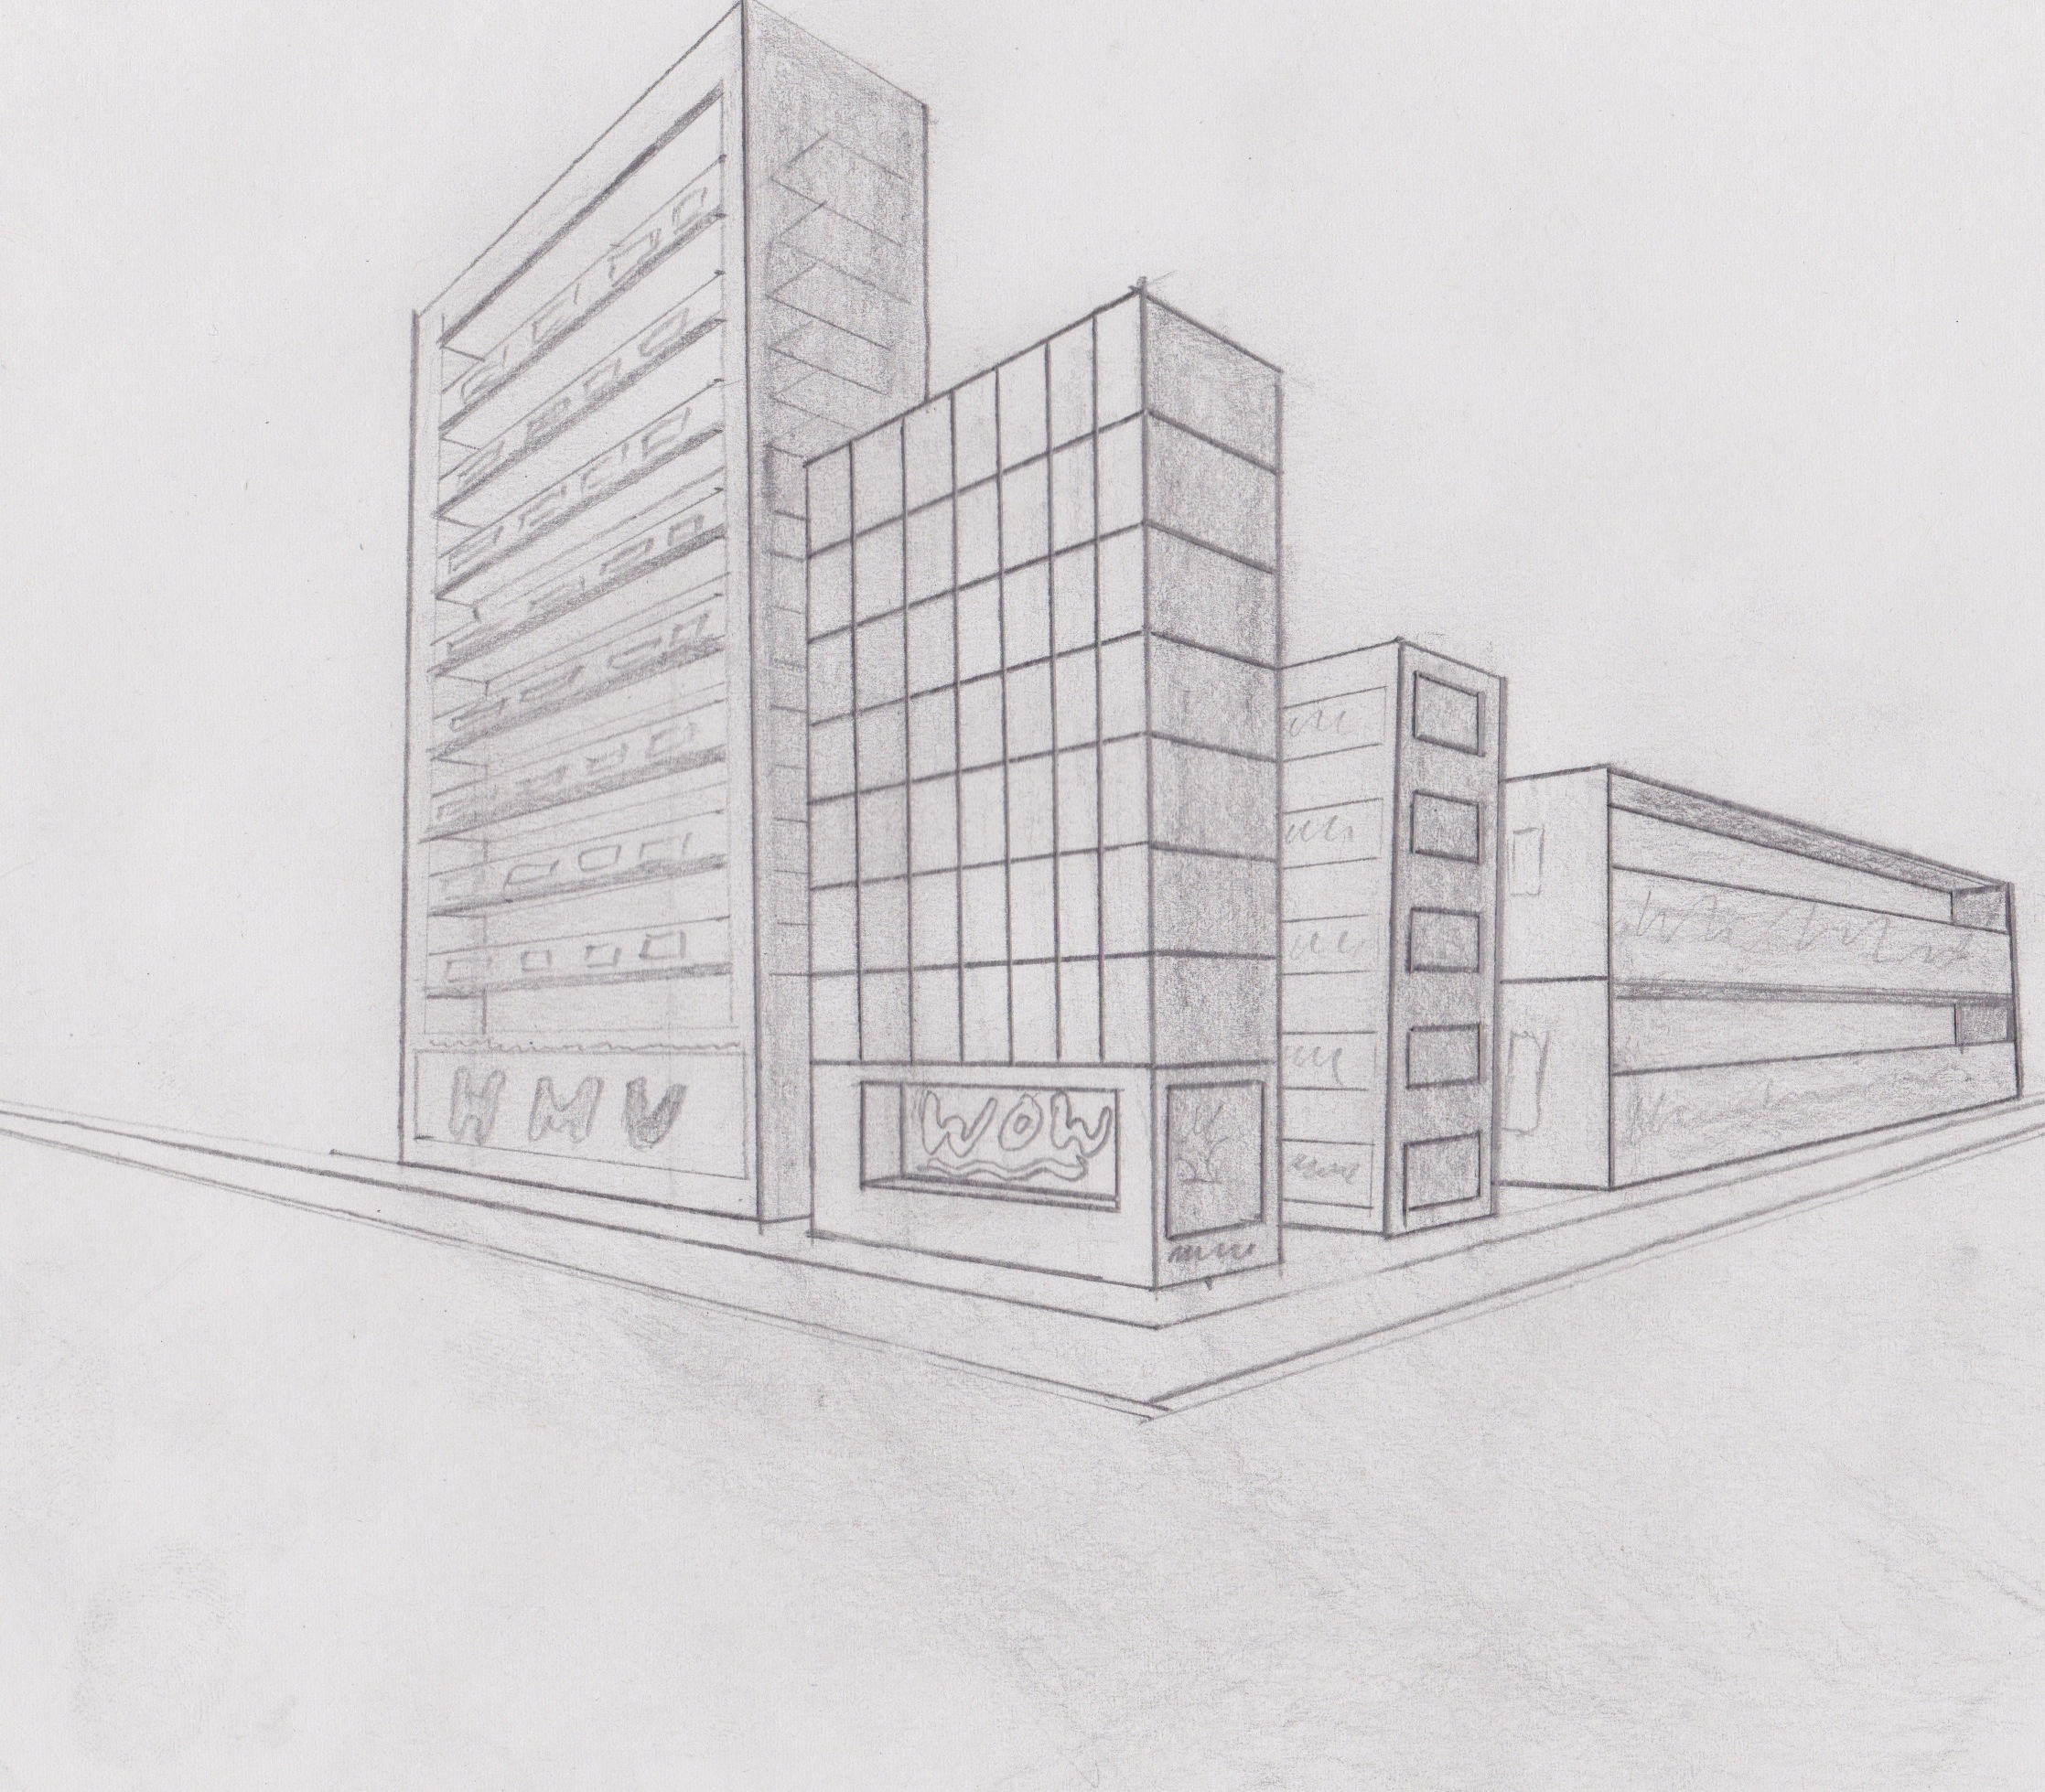 Drawn bulding  vanishing point Creative Perspective 1 ! Drawing